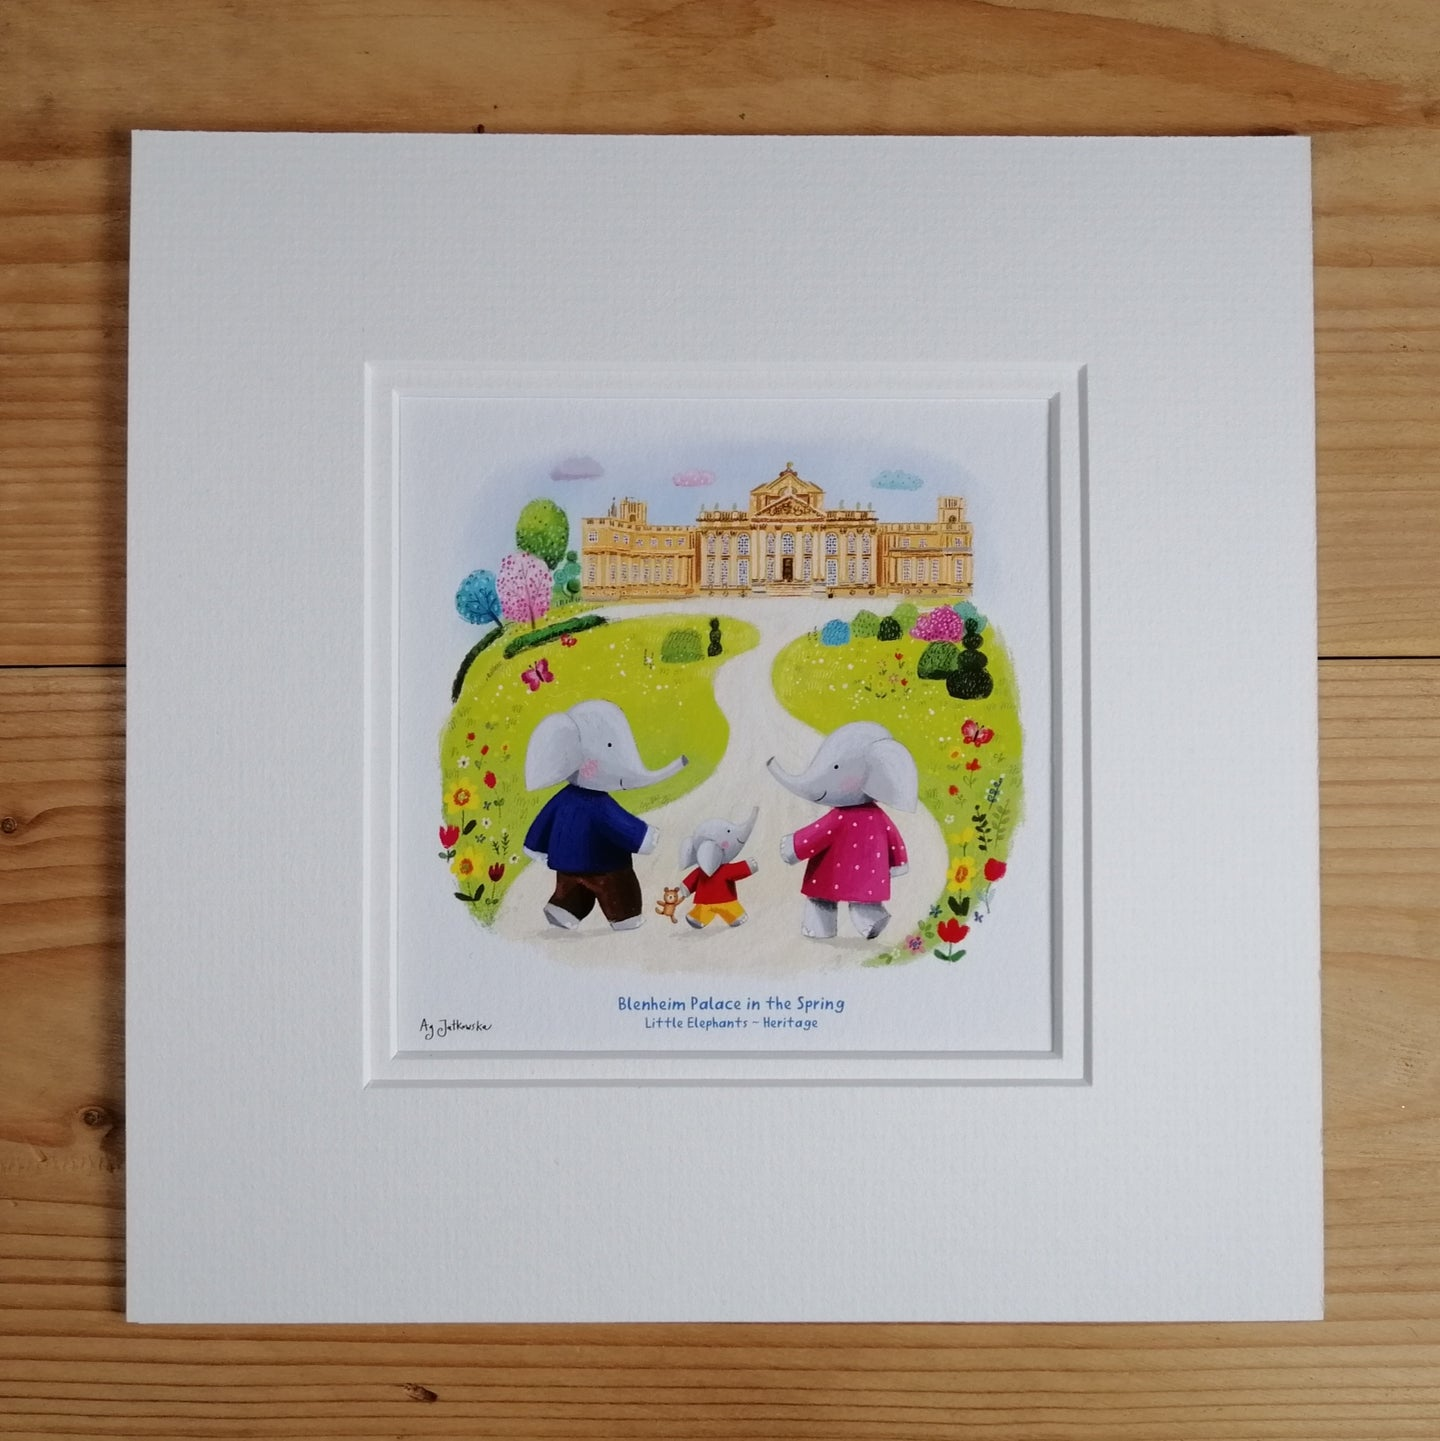 Blenheim Palace in the Spring - Heritage Fine Art Print